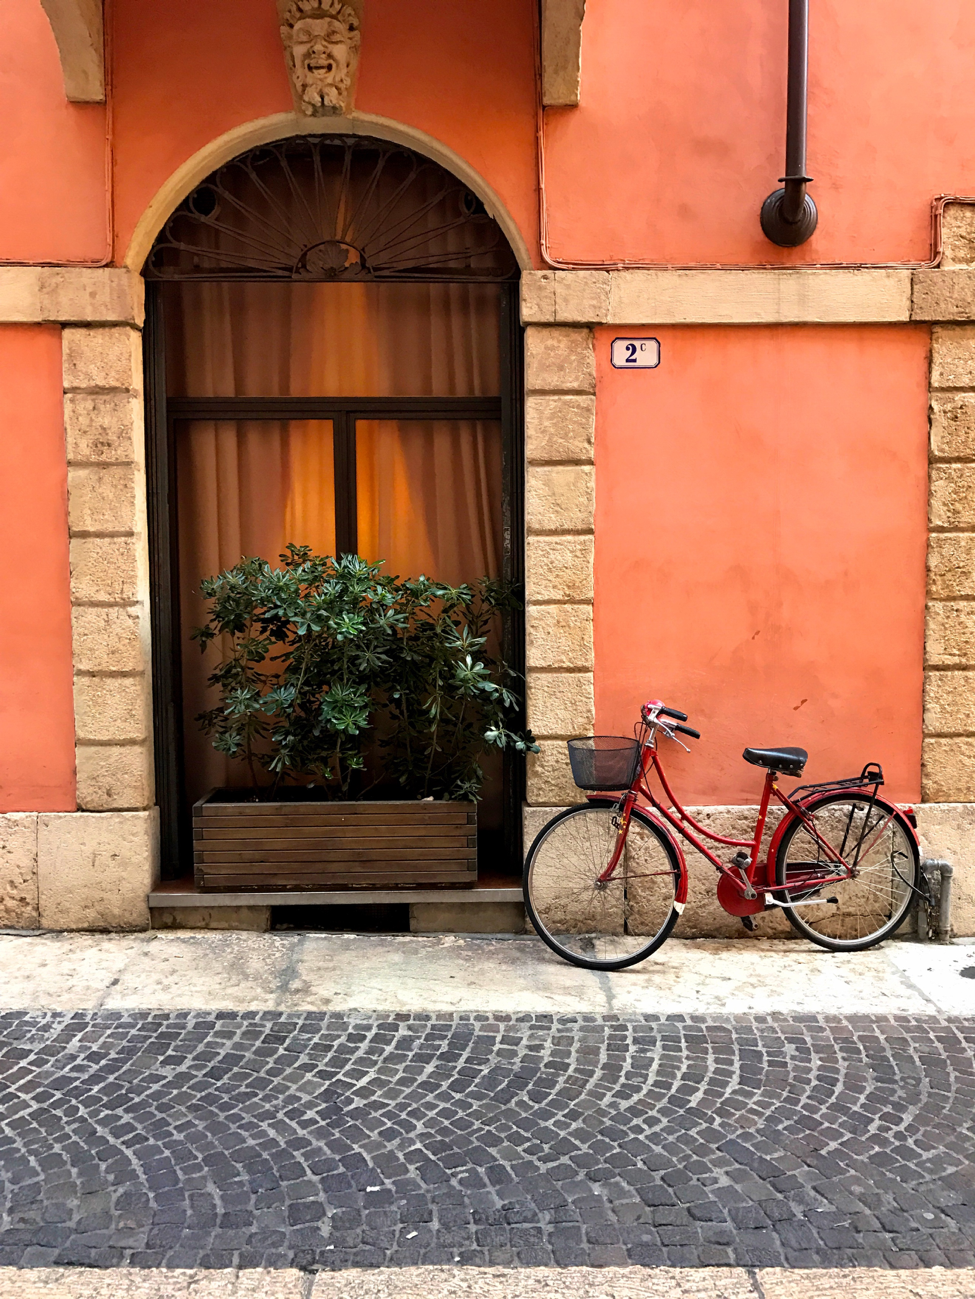 17 Photos to Inspire You to Visit Verona, Italy - Get Lost With Jackie